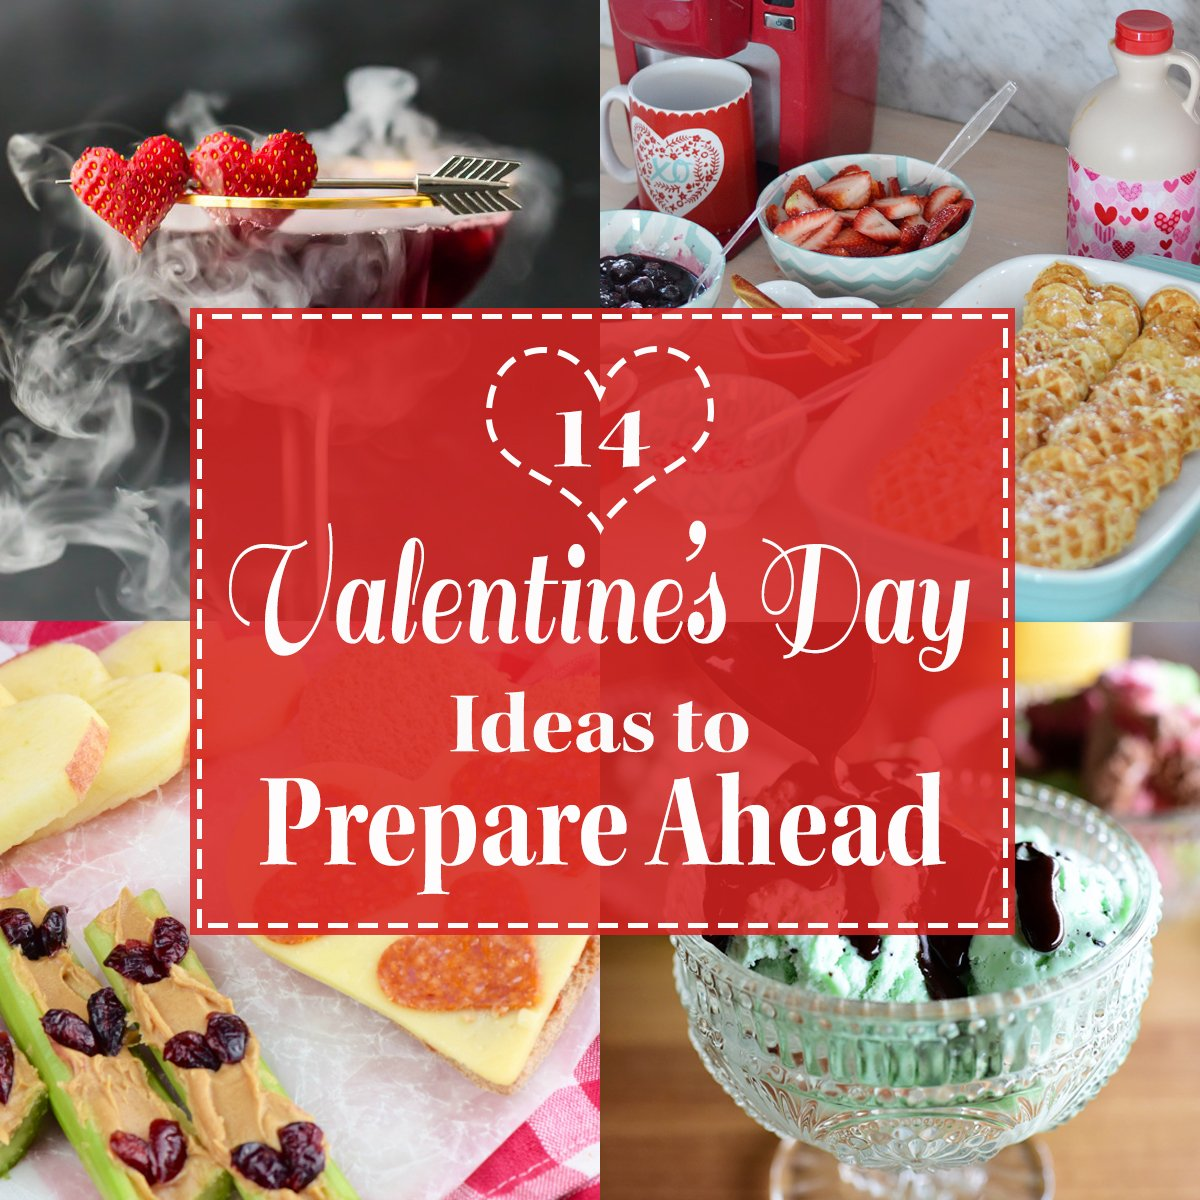 14 Valentine's Day Ideas to Prepare Ahead - All kinds of ideas to help you prep ahead for this February 14th! - ProjectMealPlan.com